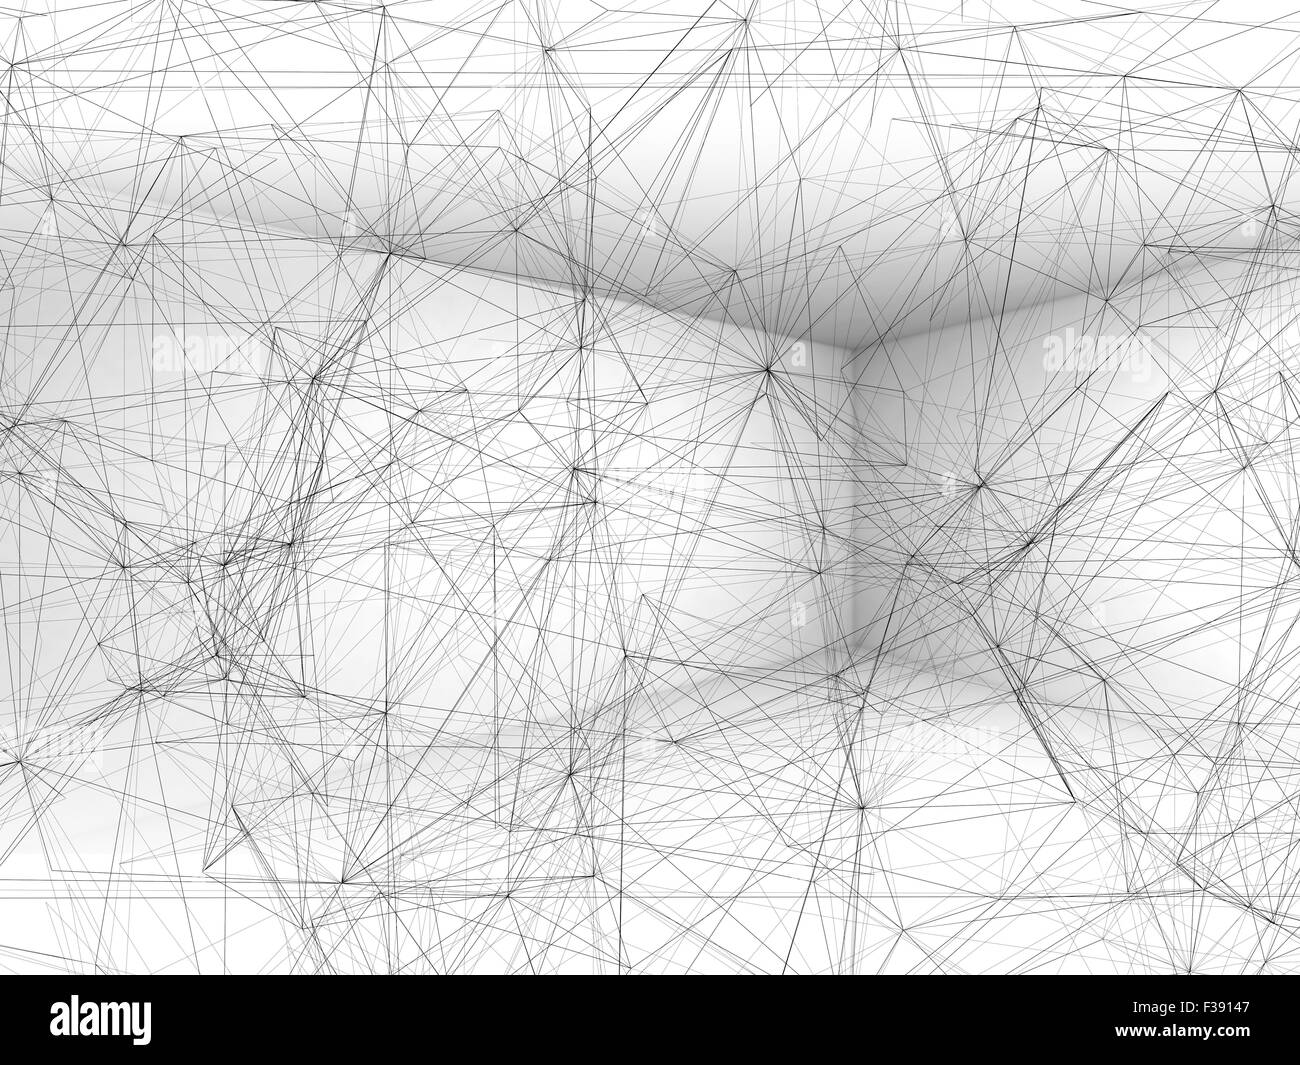 Abstract digital background with wire-frame polygonal mesh in white ...